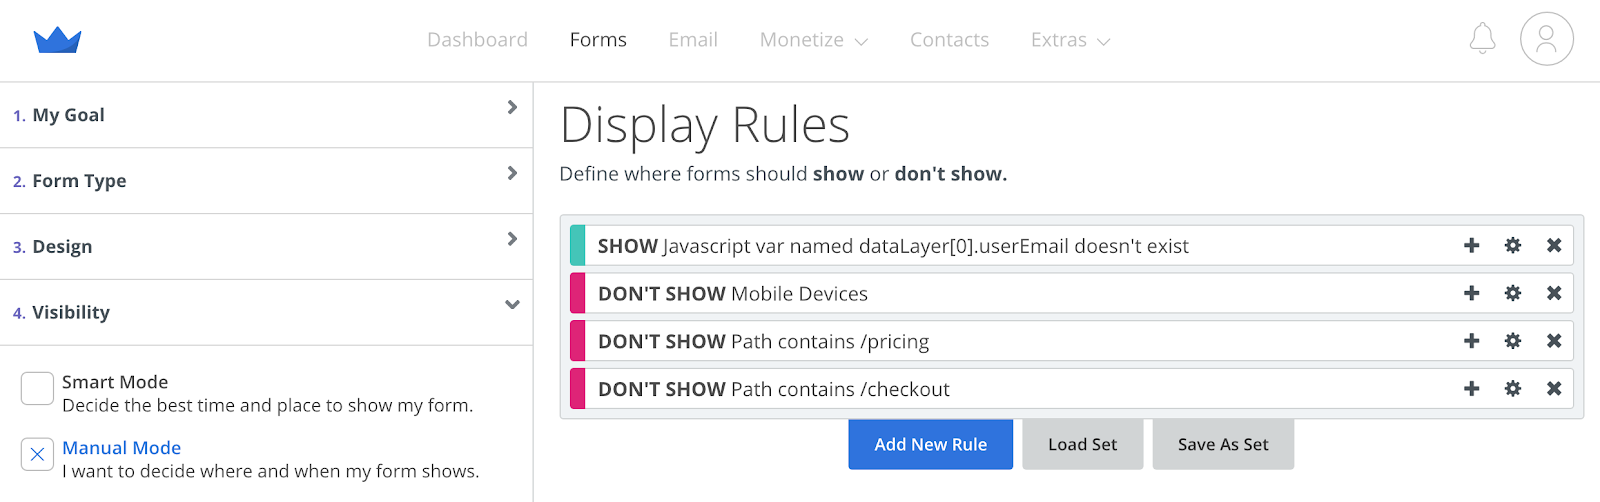 Screenshot of Display Rules for Welcome Mat